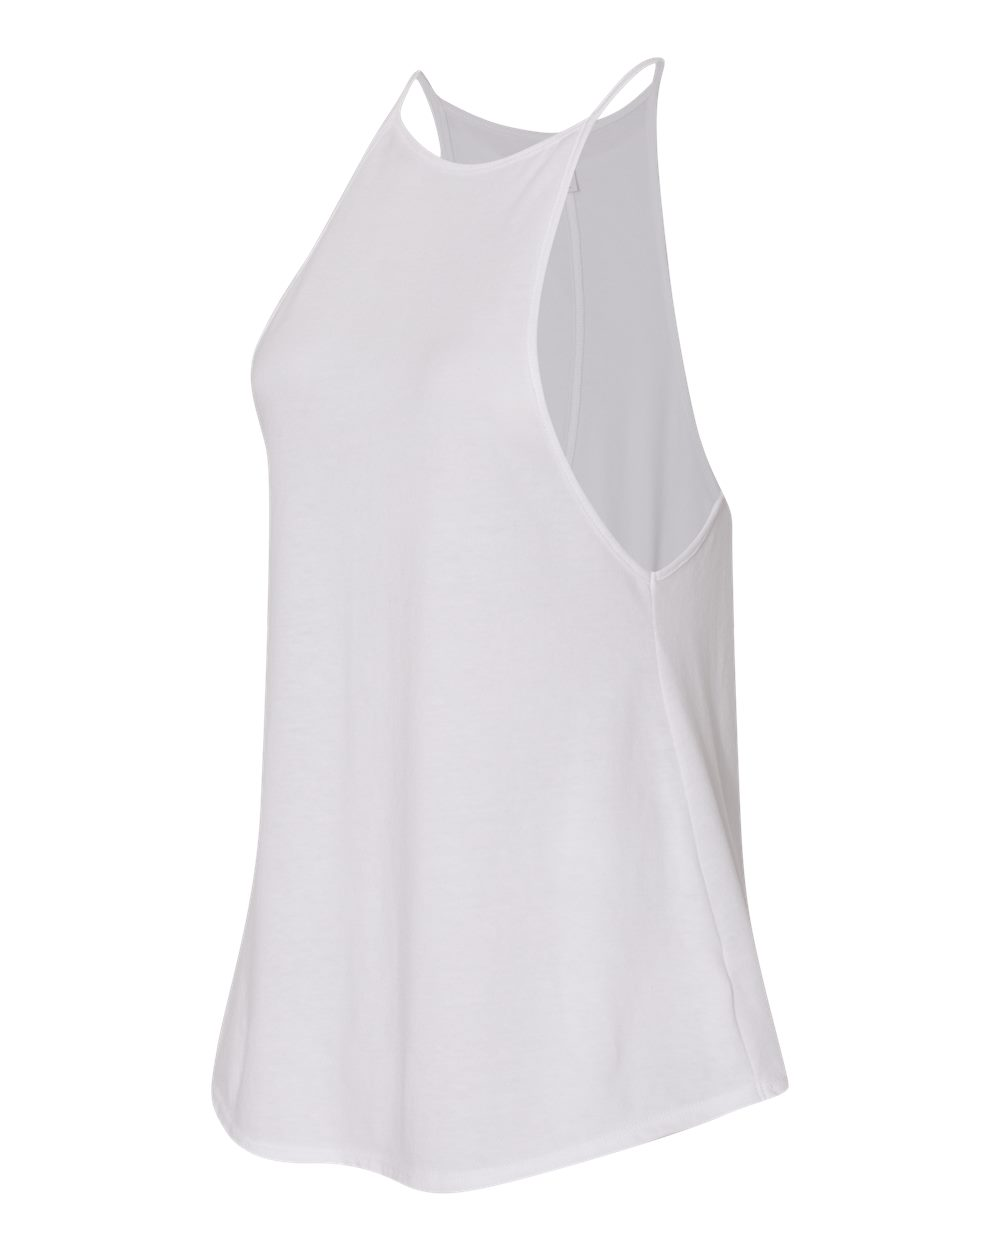 Alternative 5092 - Women's 50/50 VIP Tank Top